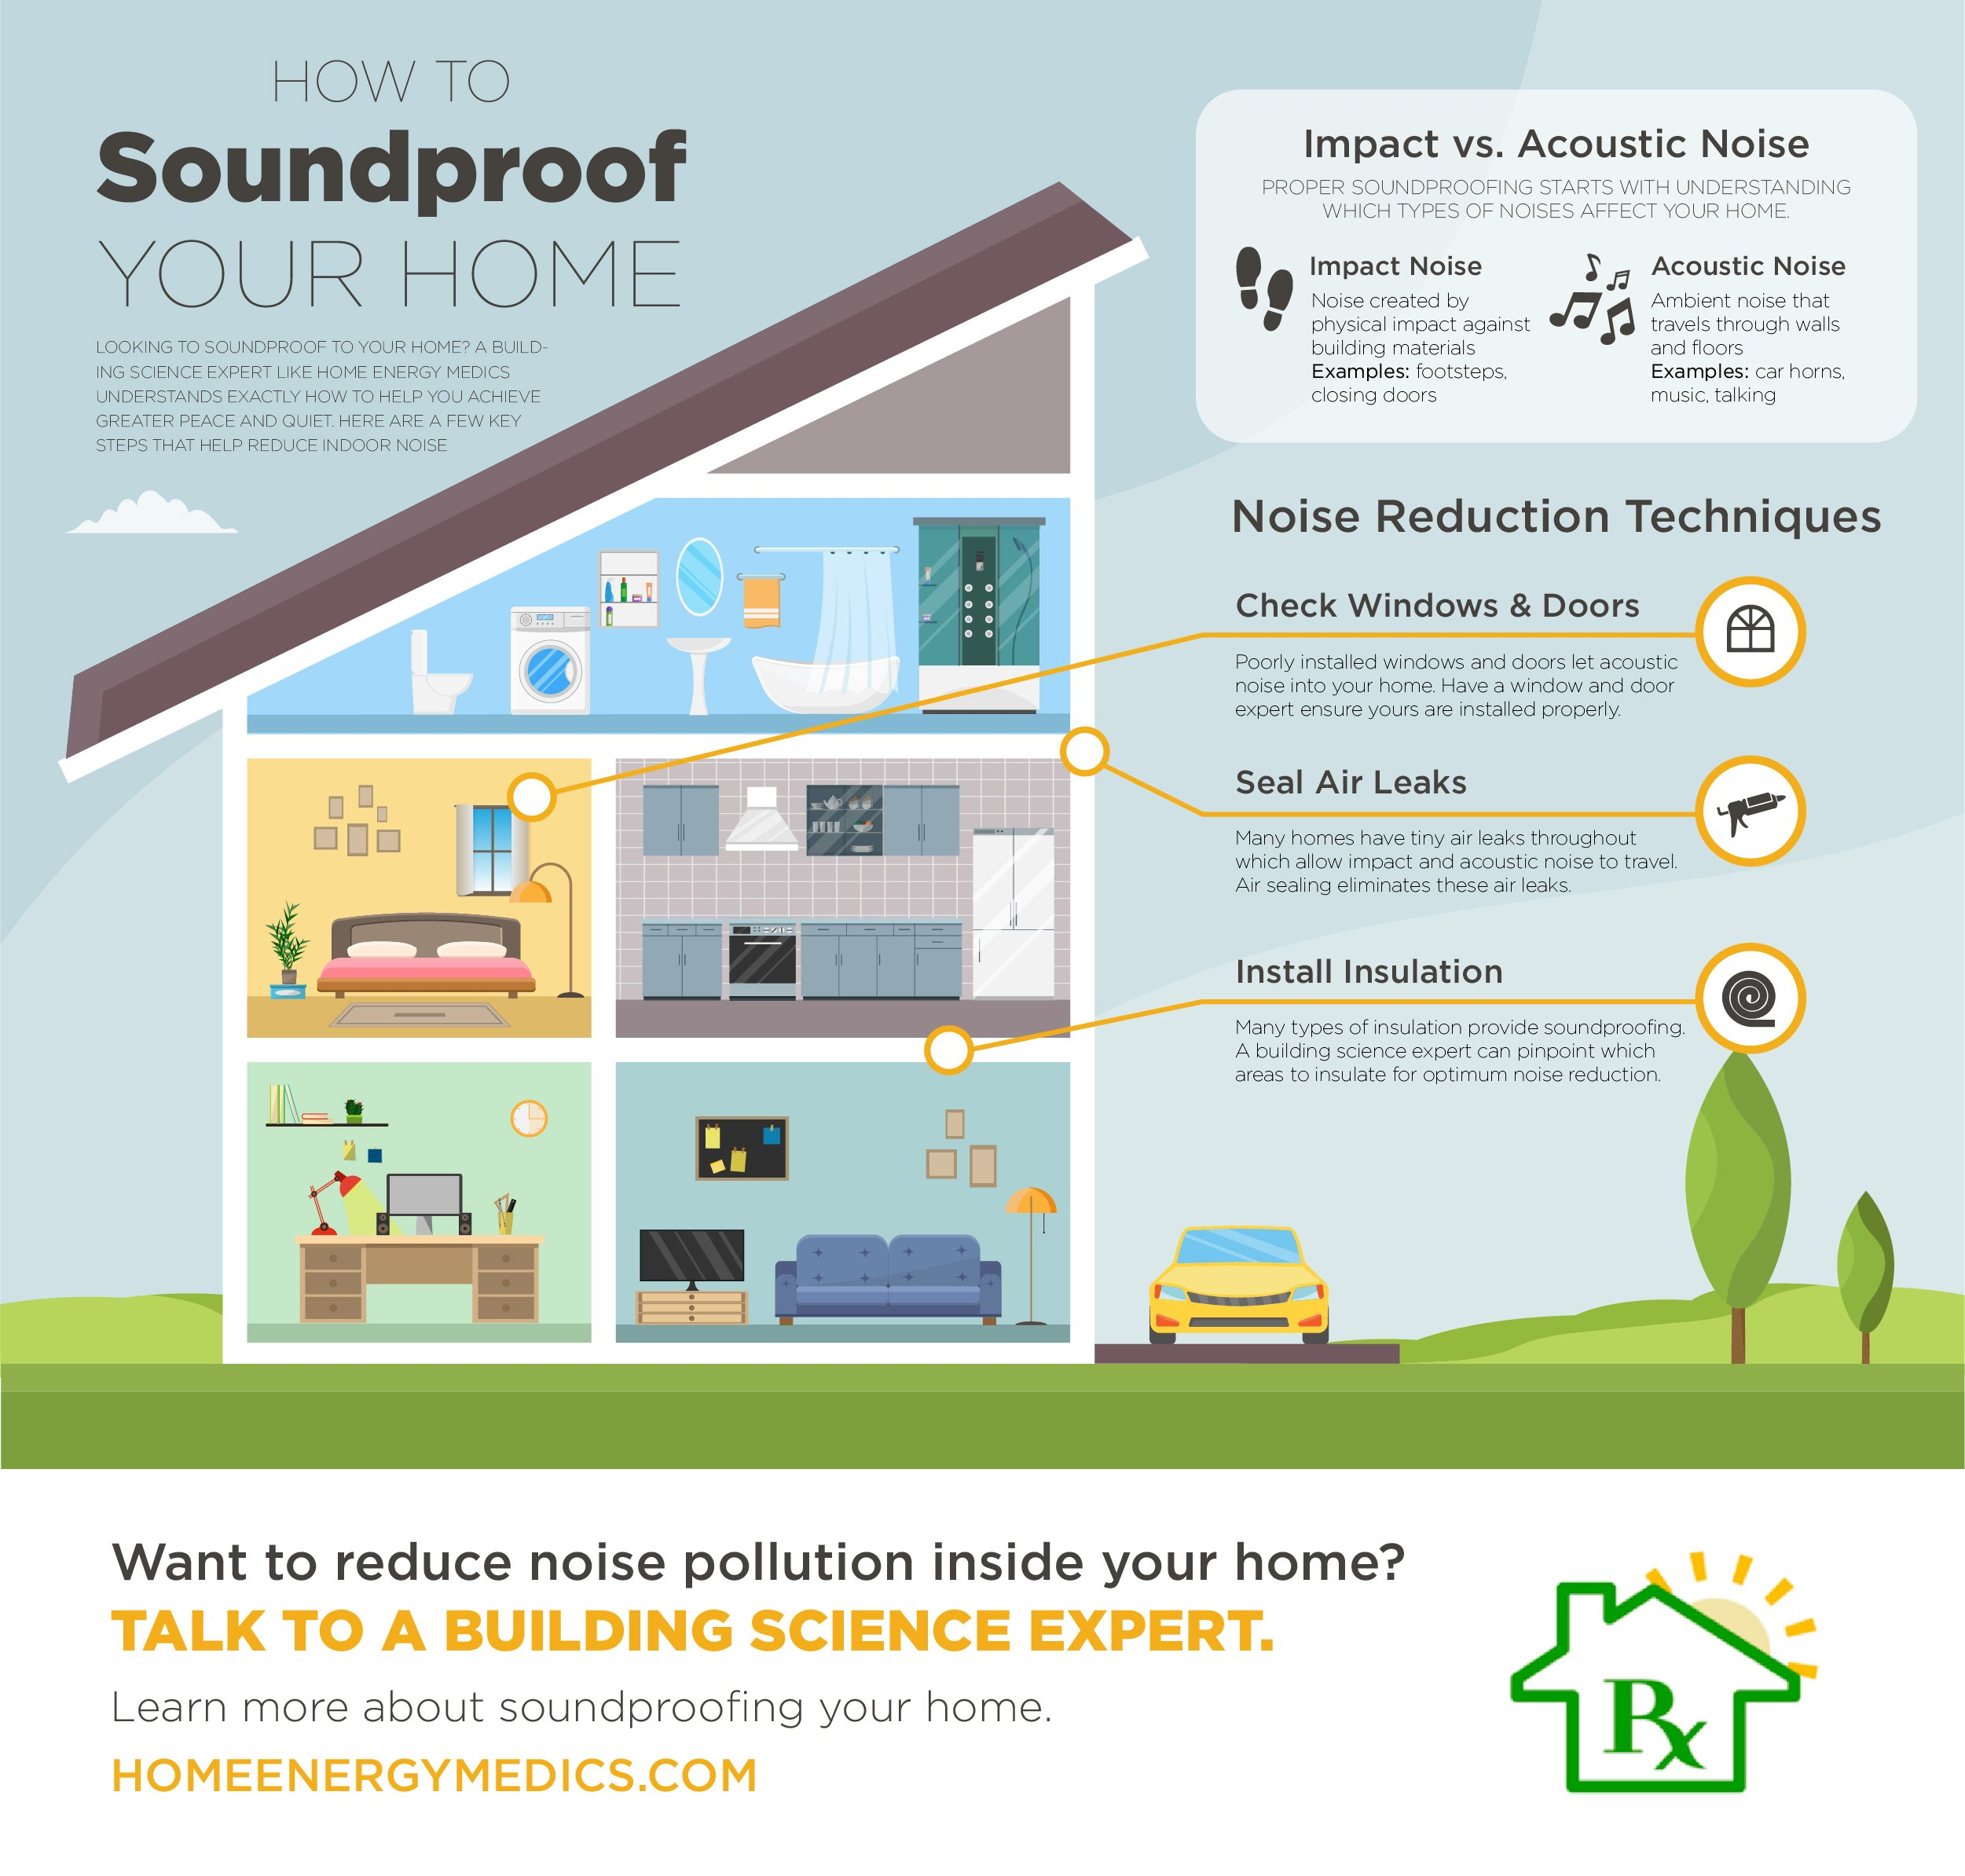 how to soundproof your home infographic home energy medics